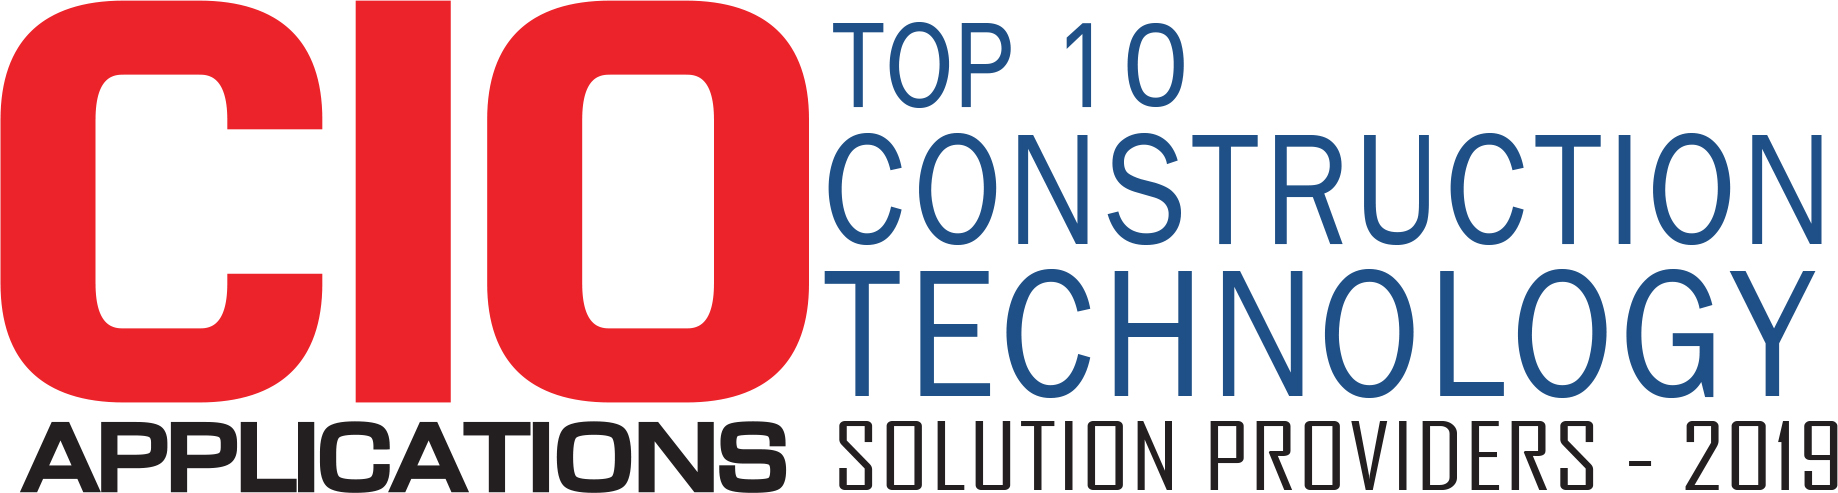 Top Construction Tech Companies